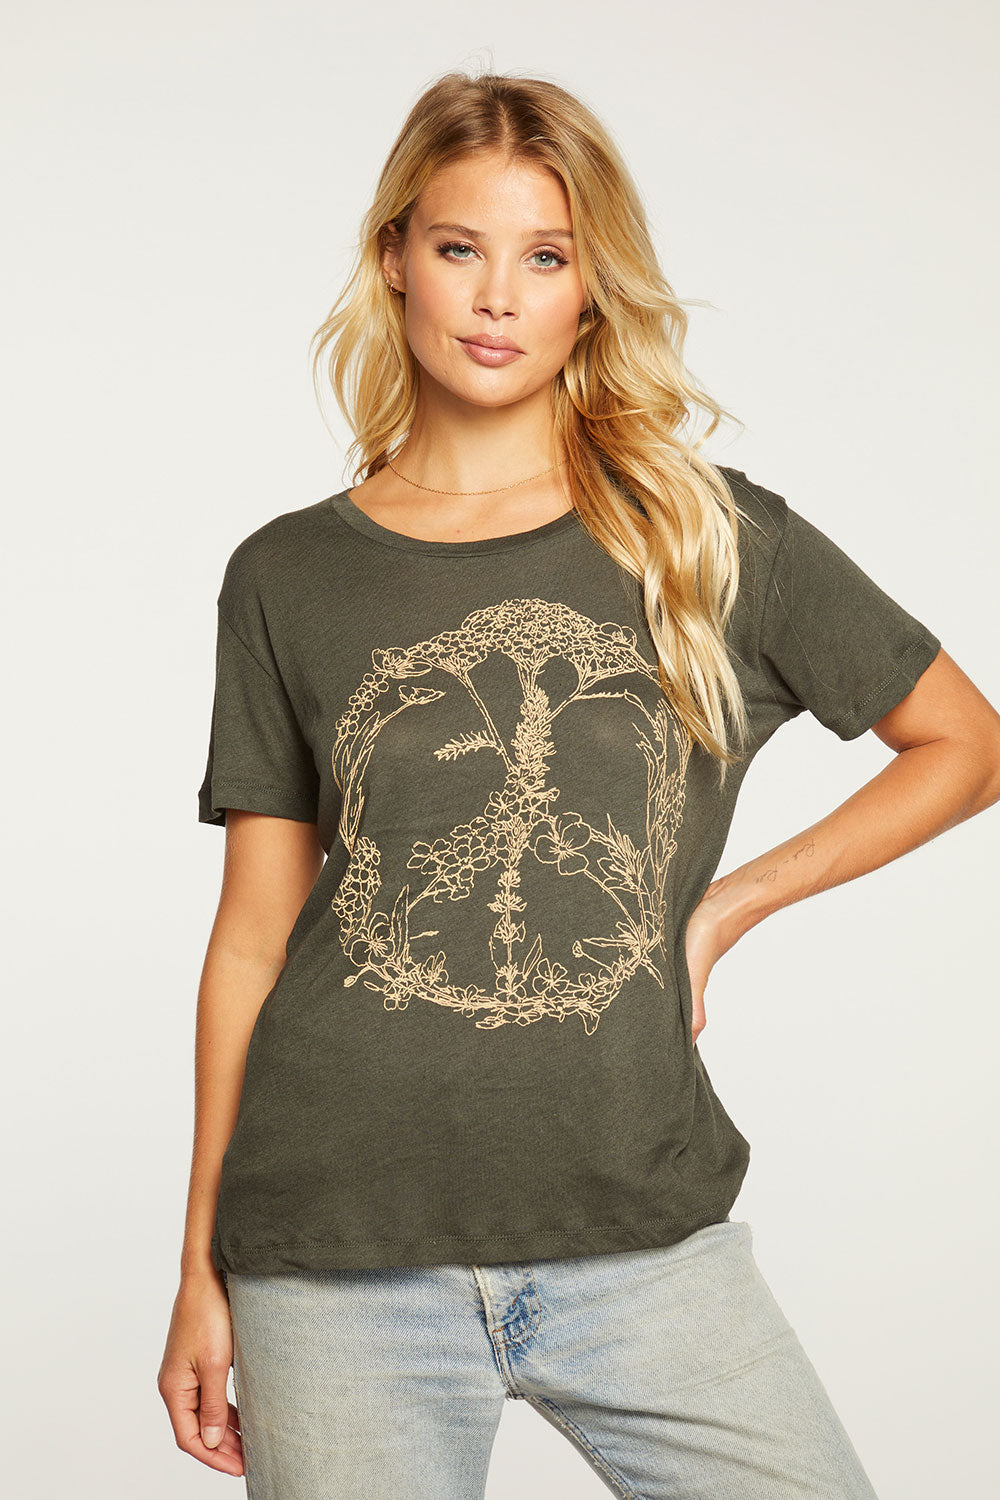 Peace Wreath WOMENS chaserbrand4.myshopify.com